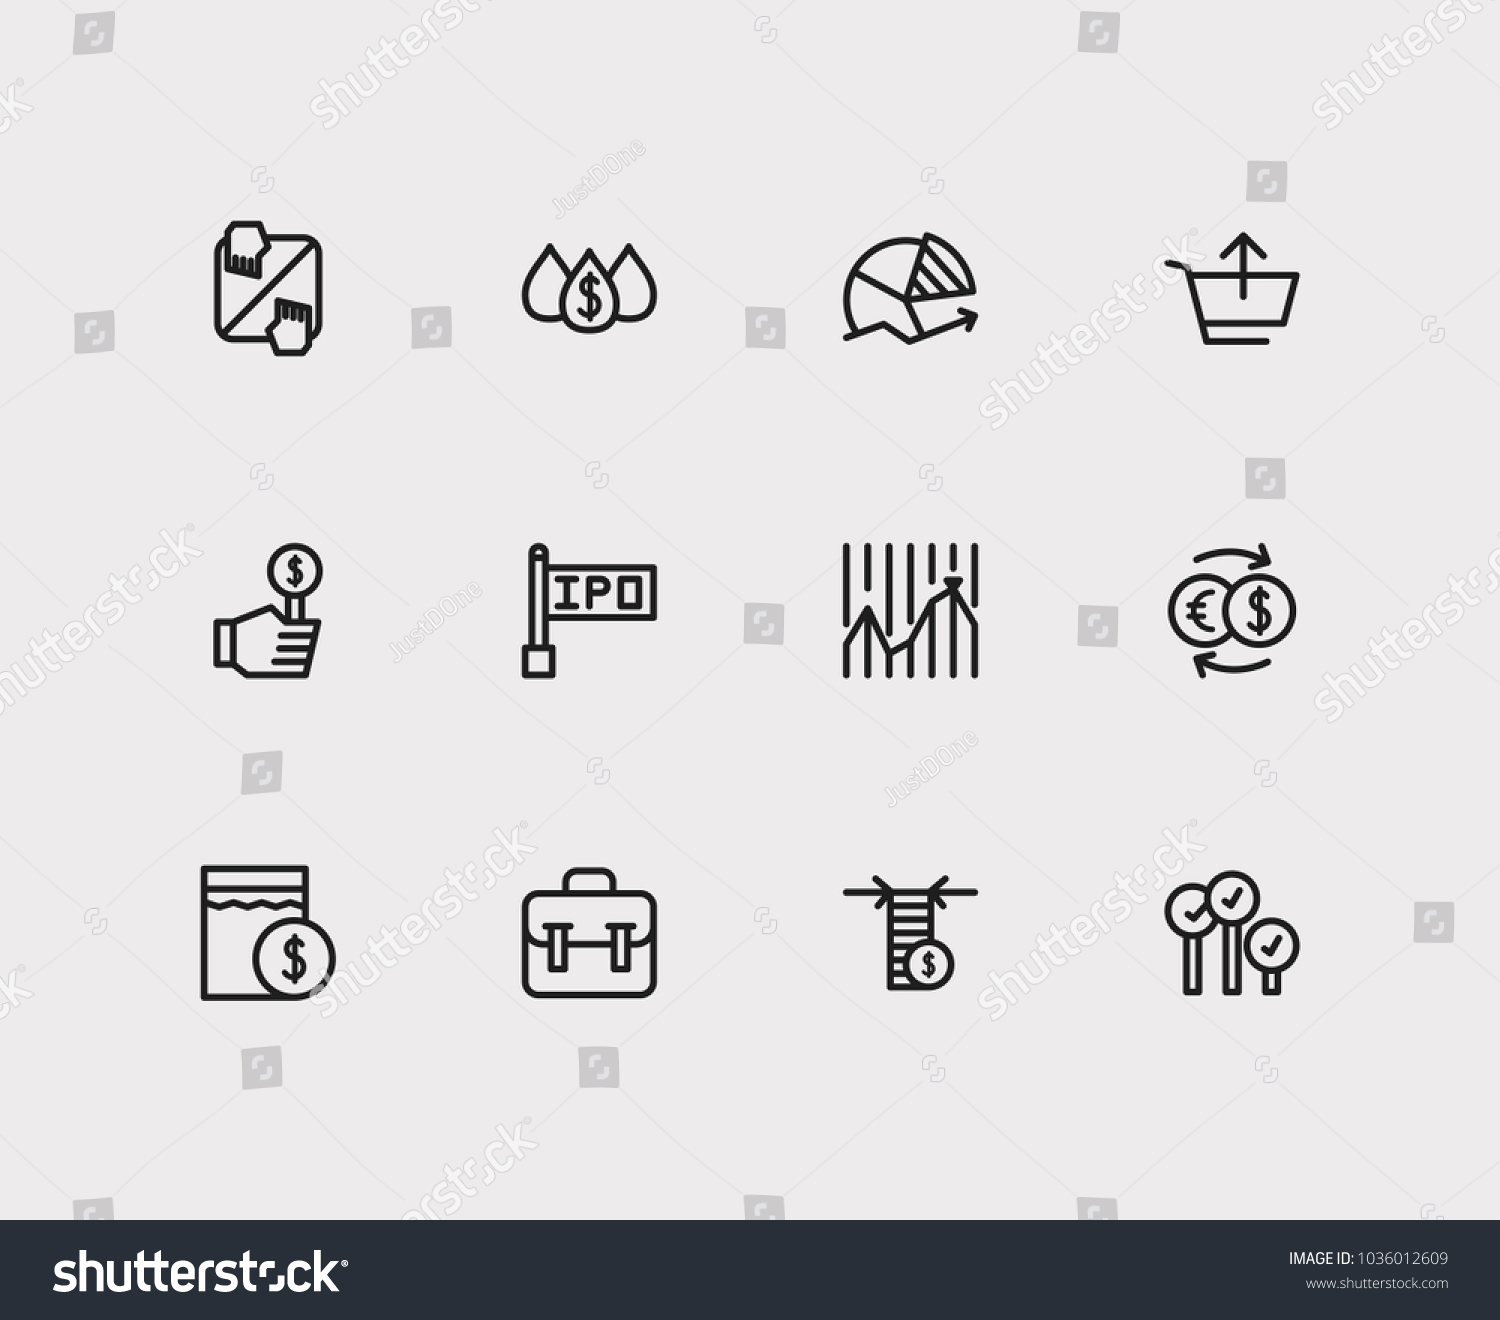 Stock Market Chart Vector Bicolor Rounded Icon Image Style Is A Flat Symbol Inside